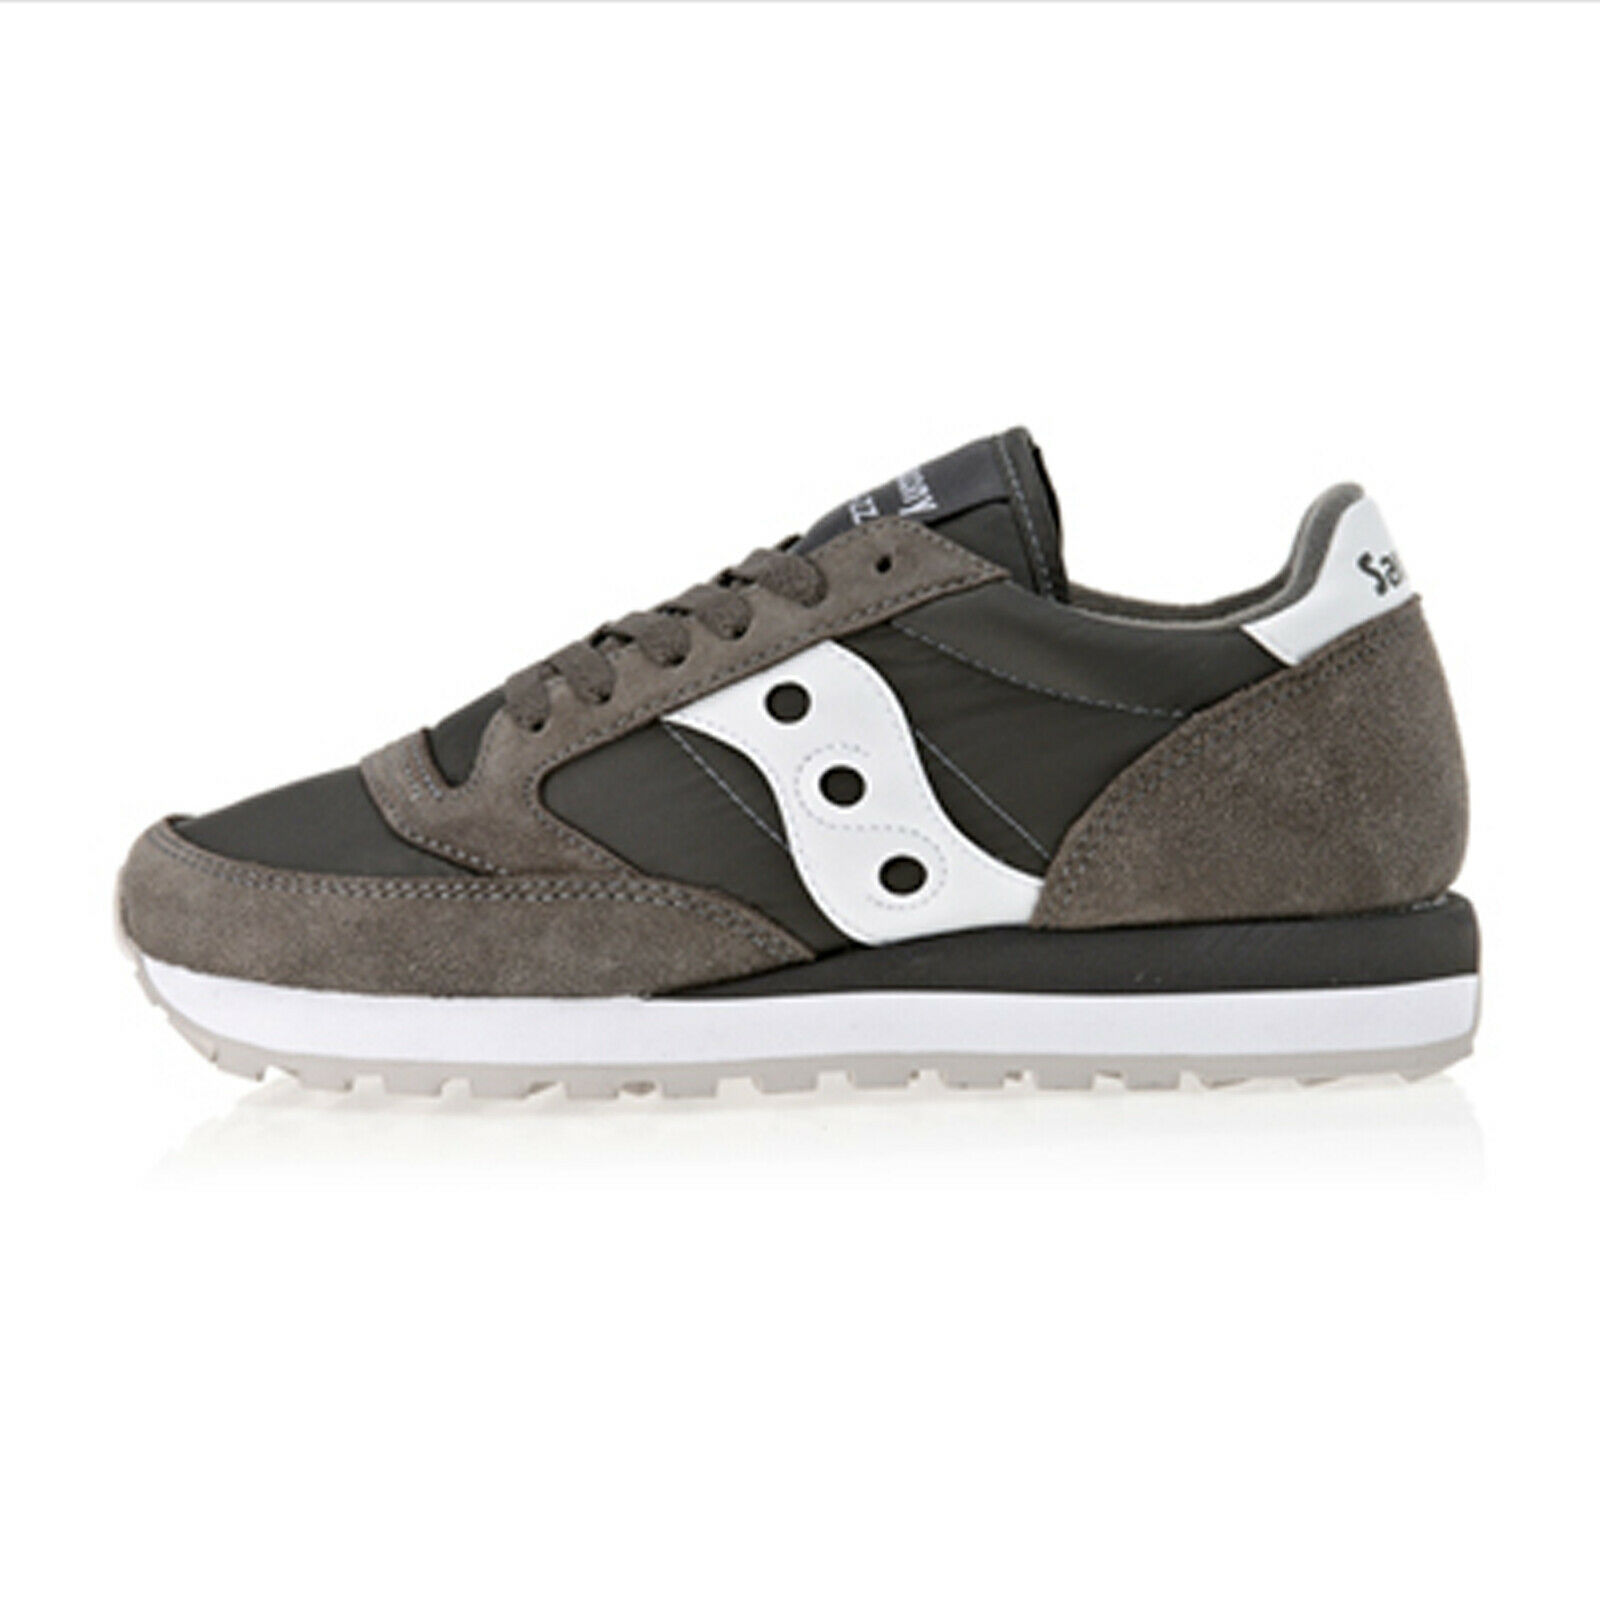 11a9dd7142 Saucony Men's Athletic Running shoes Jazz Original Charcoal Size US M 8-10